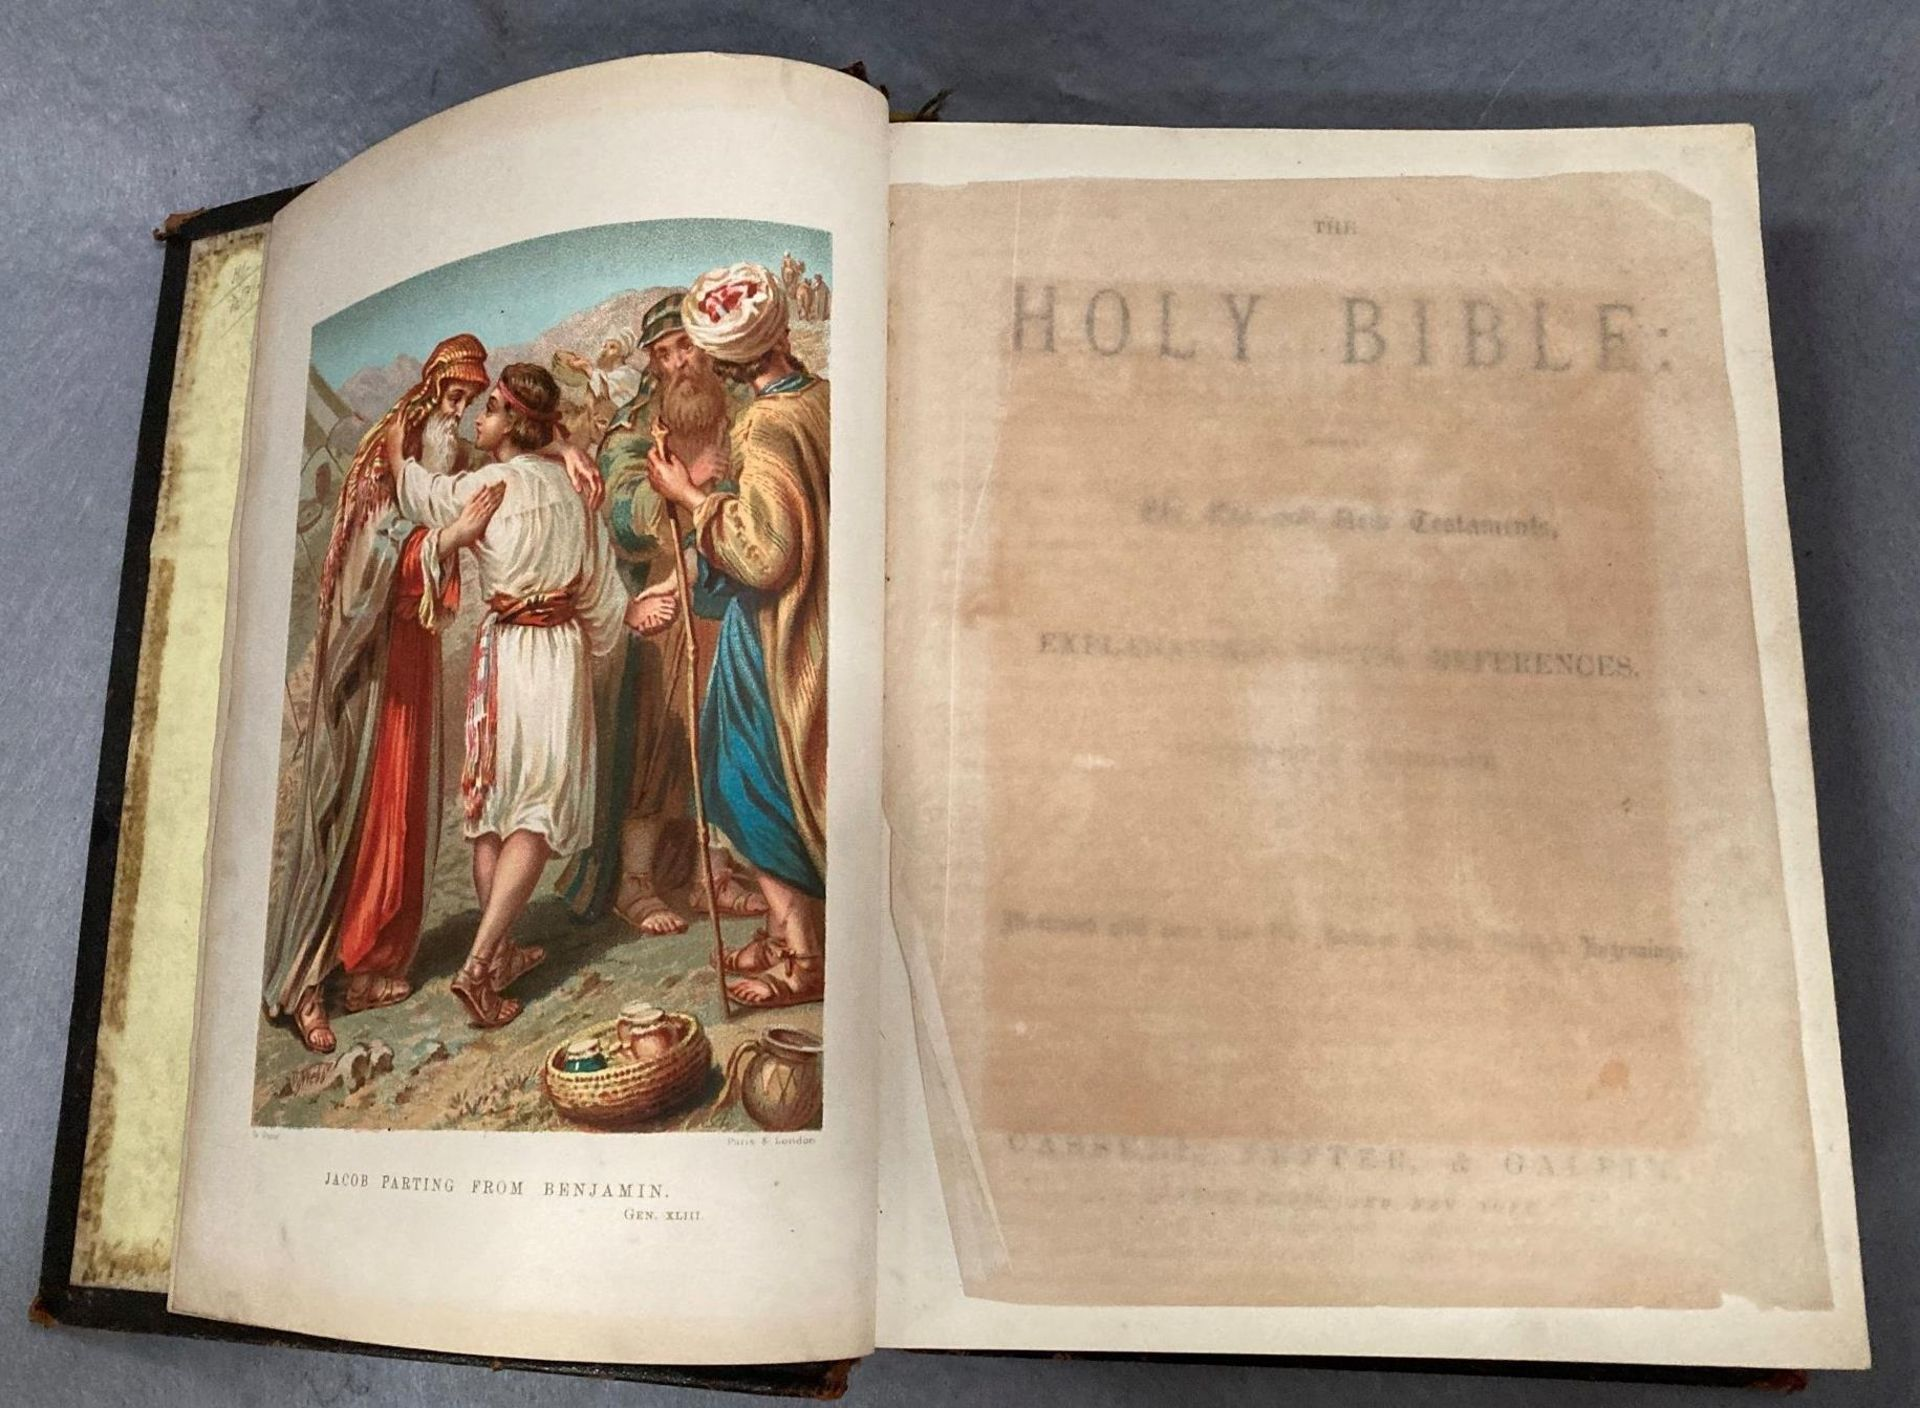 The Holy Bible illustrated with more than 900 engravings published by Cassell, - Image 2 of 4